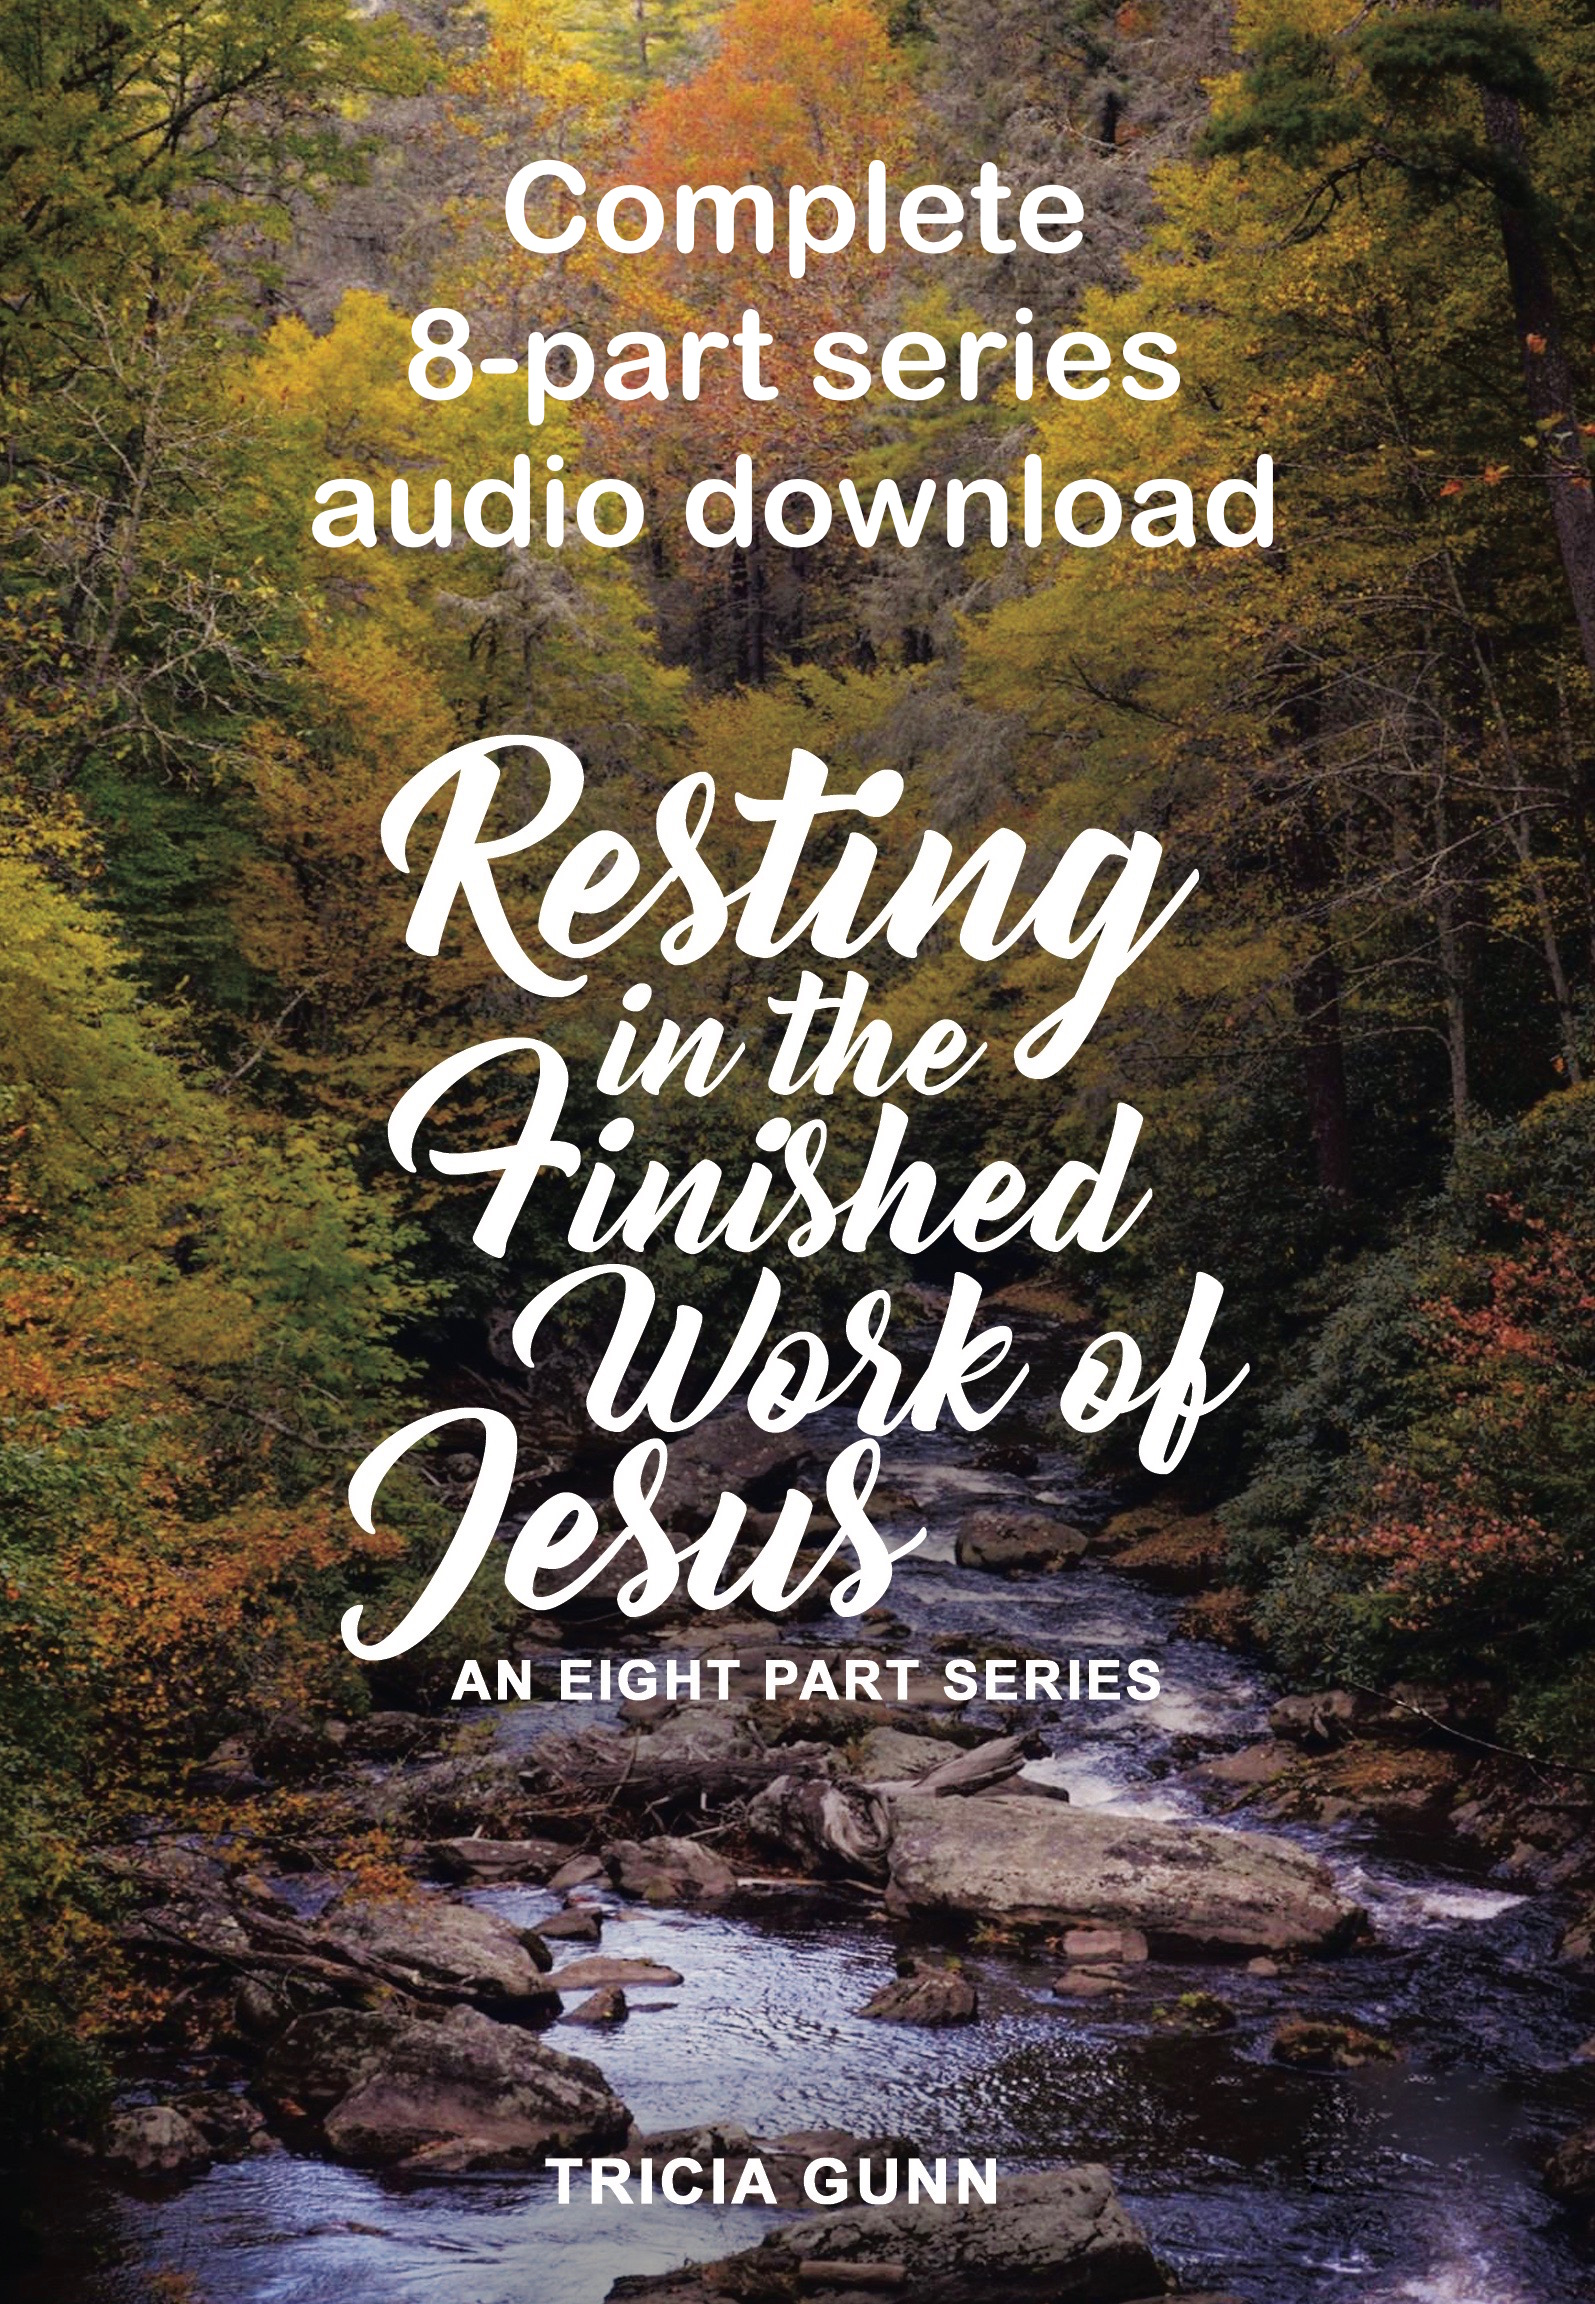 Purchase complete 8-part audio download message series